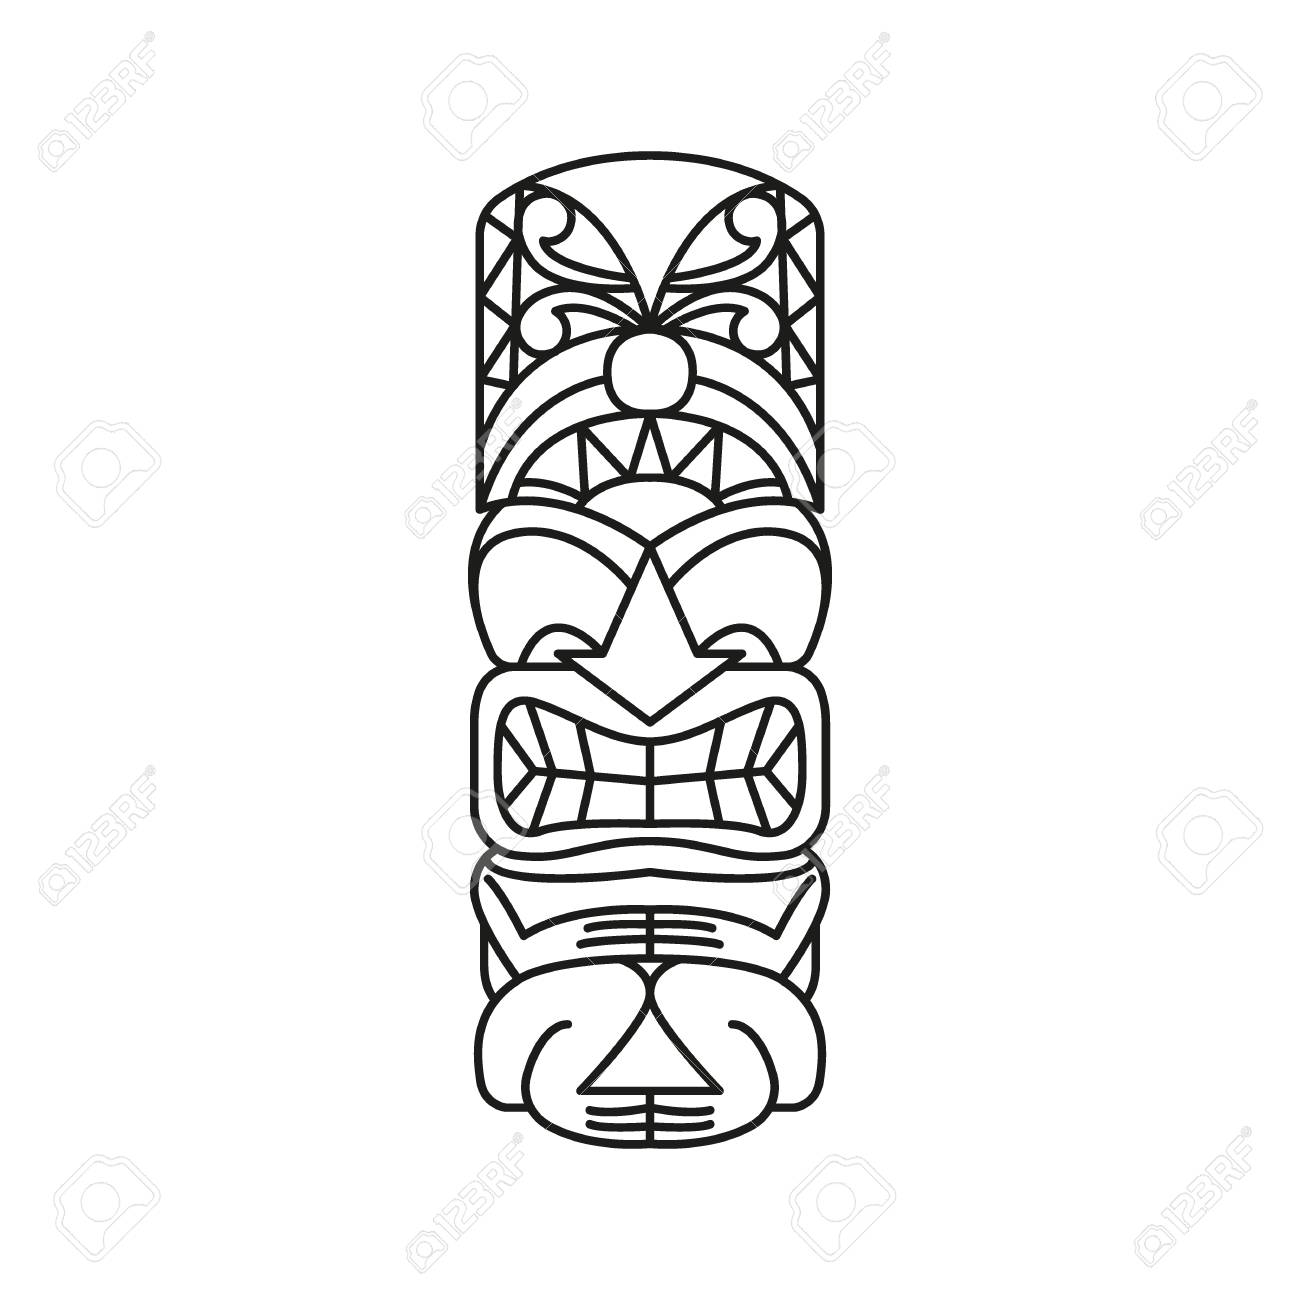 Tiki Tribal Totem head. Traditional Totem icon, North America culture Element, black outline vector illustration - 101010067